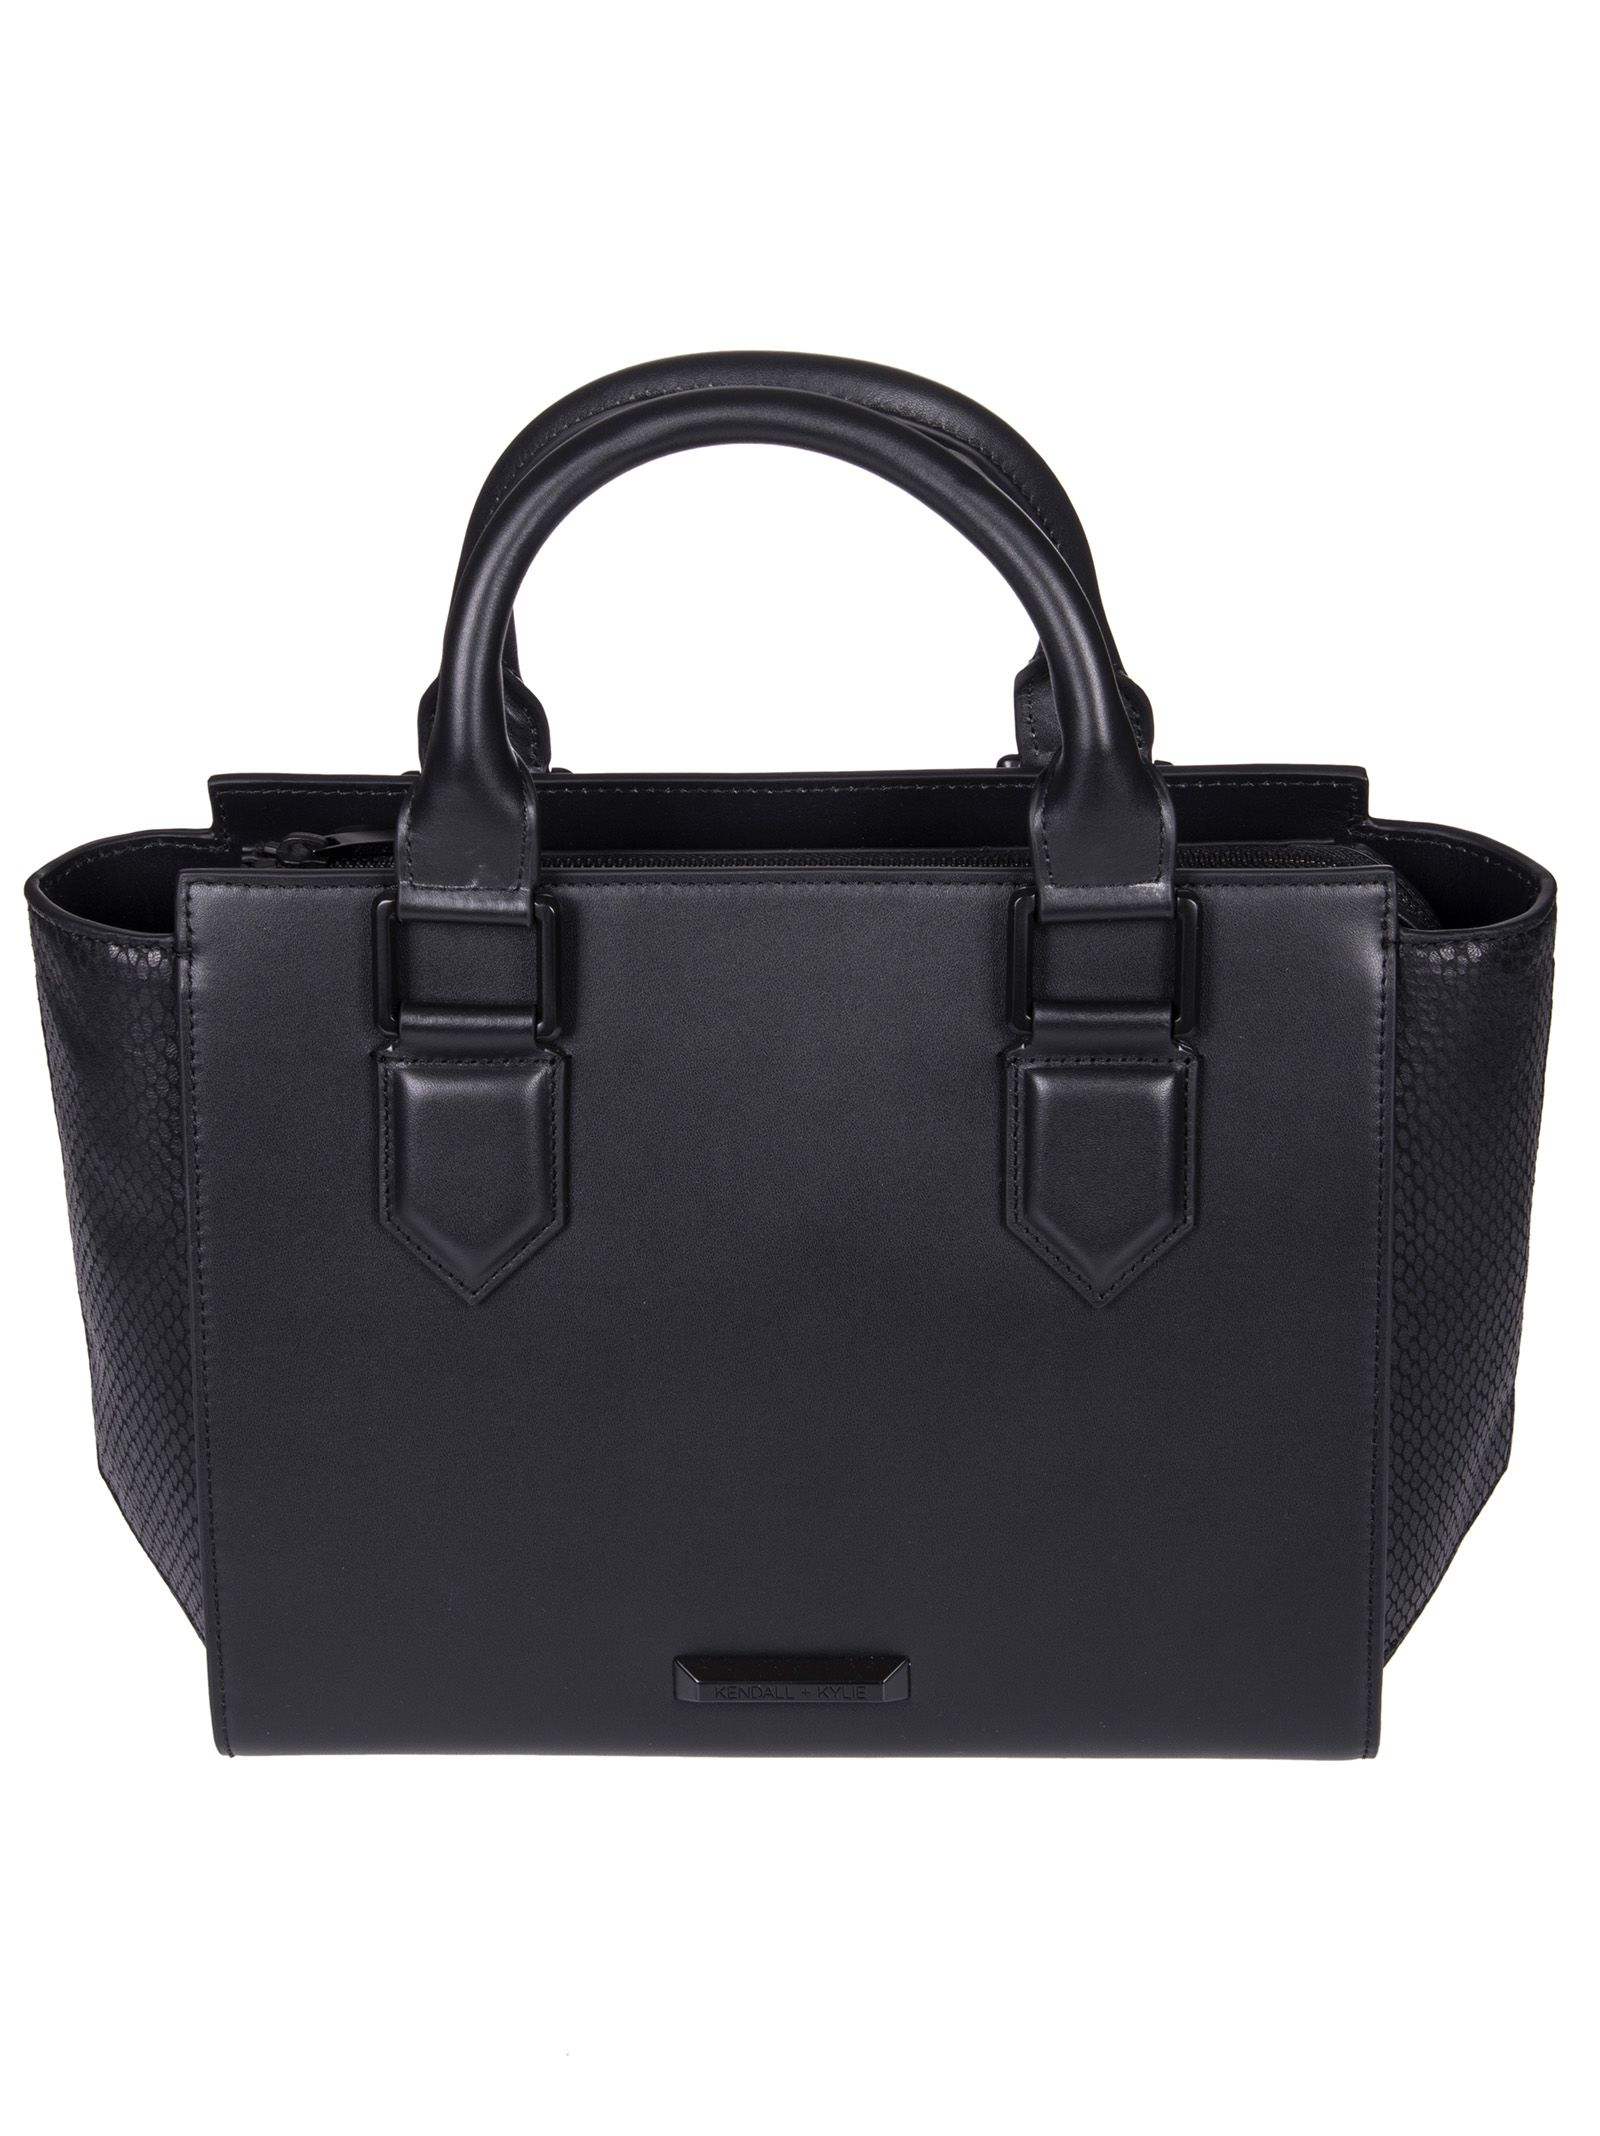 Kendall + Kylie Brookmed Handbag